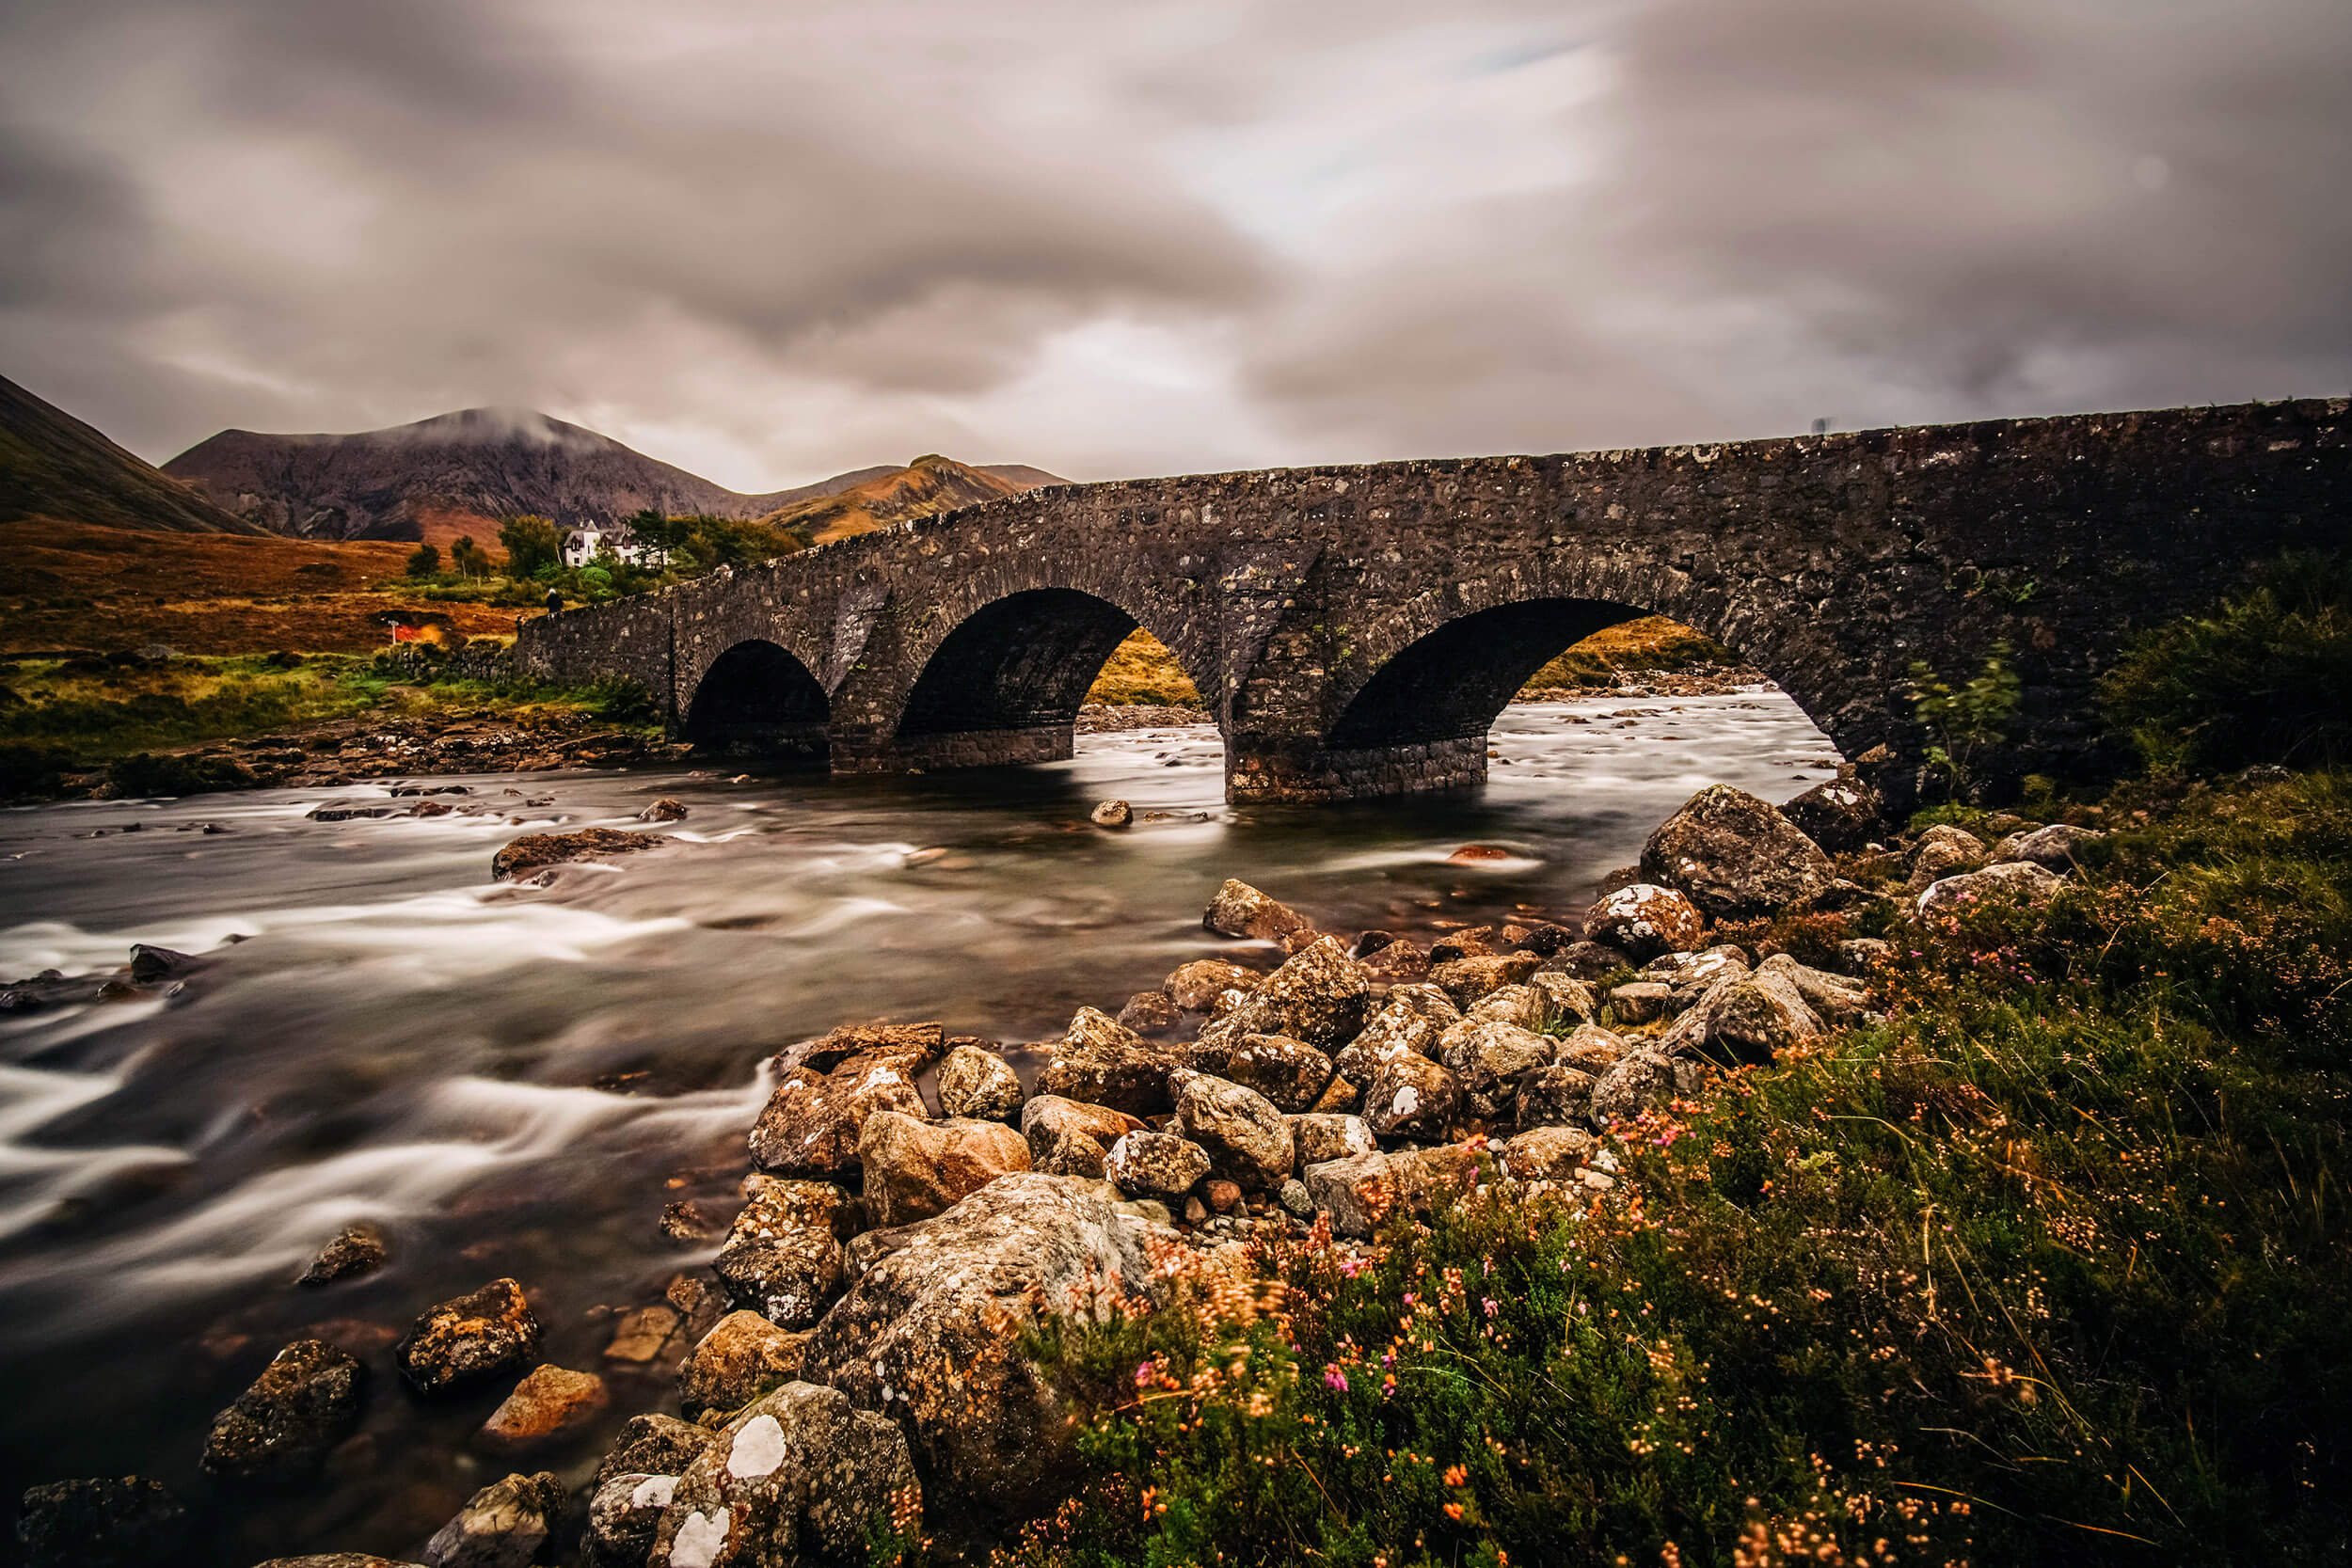 Mit dem Auto durch Schottland – Isle of Skye Old Sligachan Bridge Portree